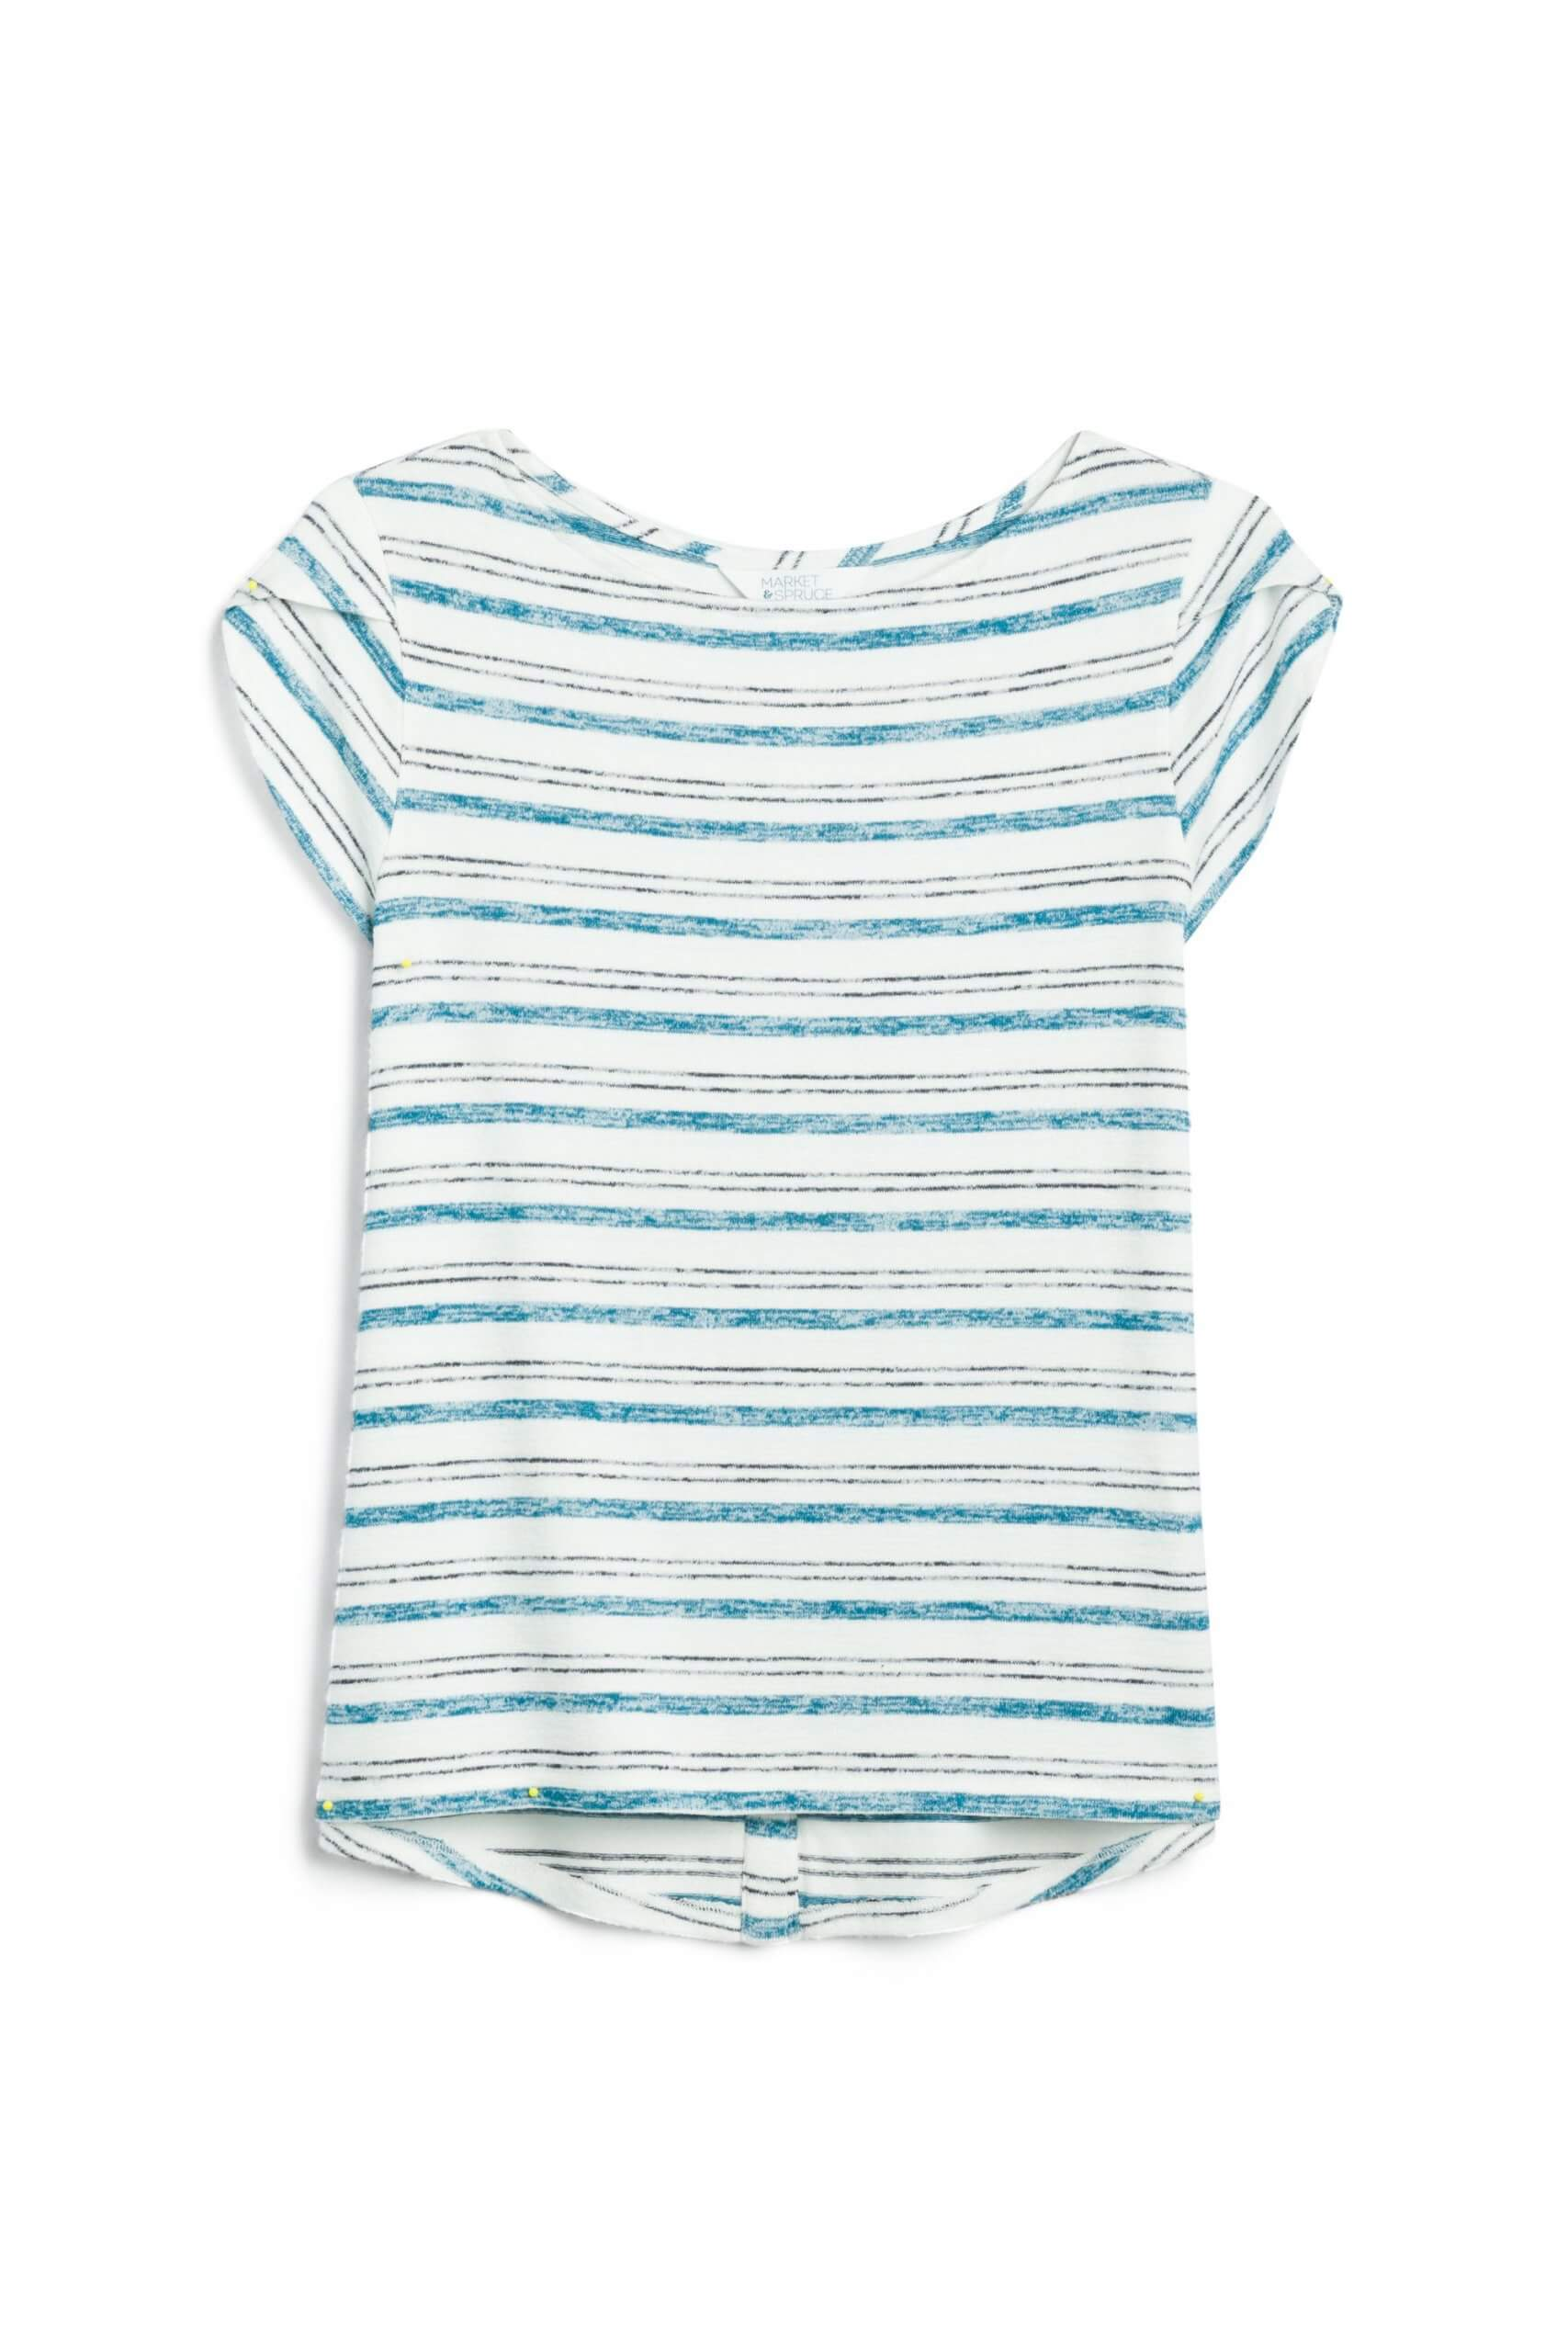 Stitch Fix Women's white and teal striped shirt.